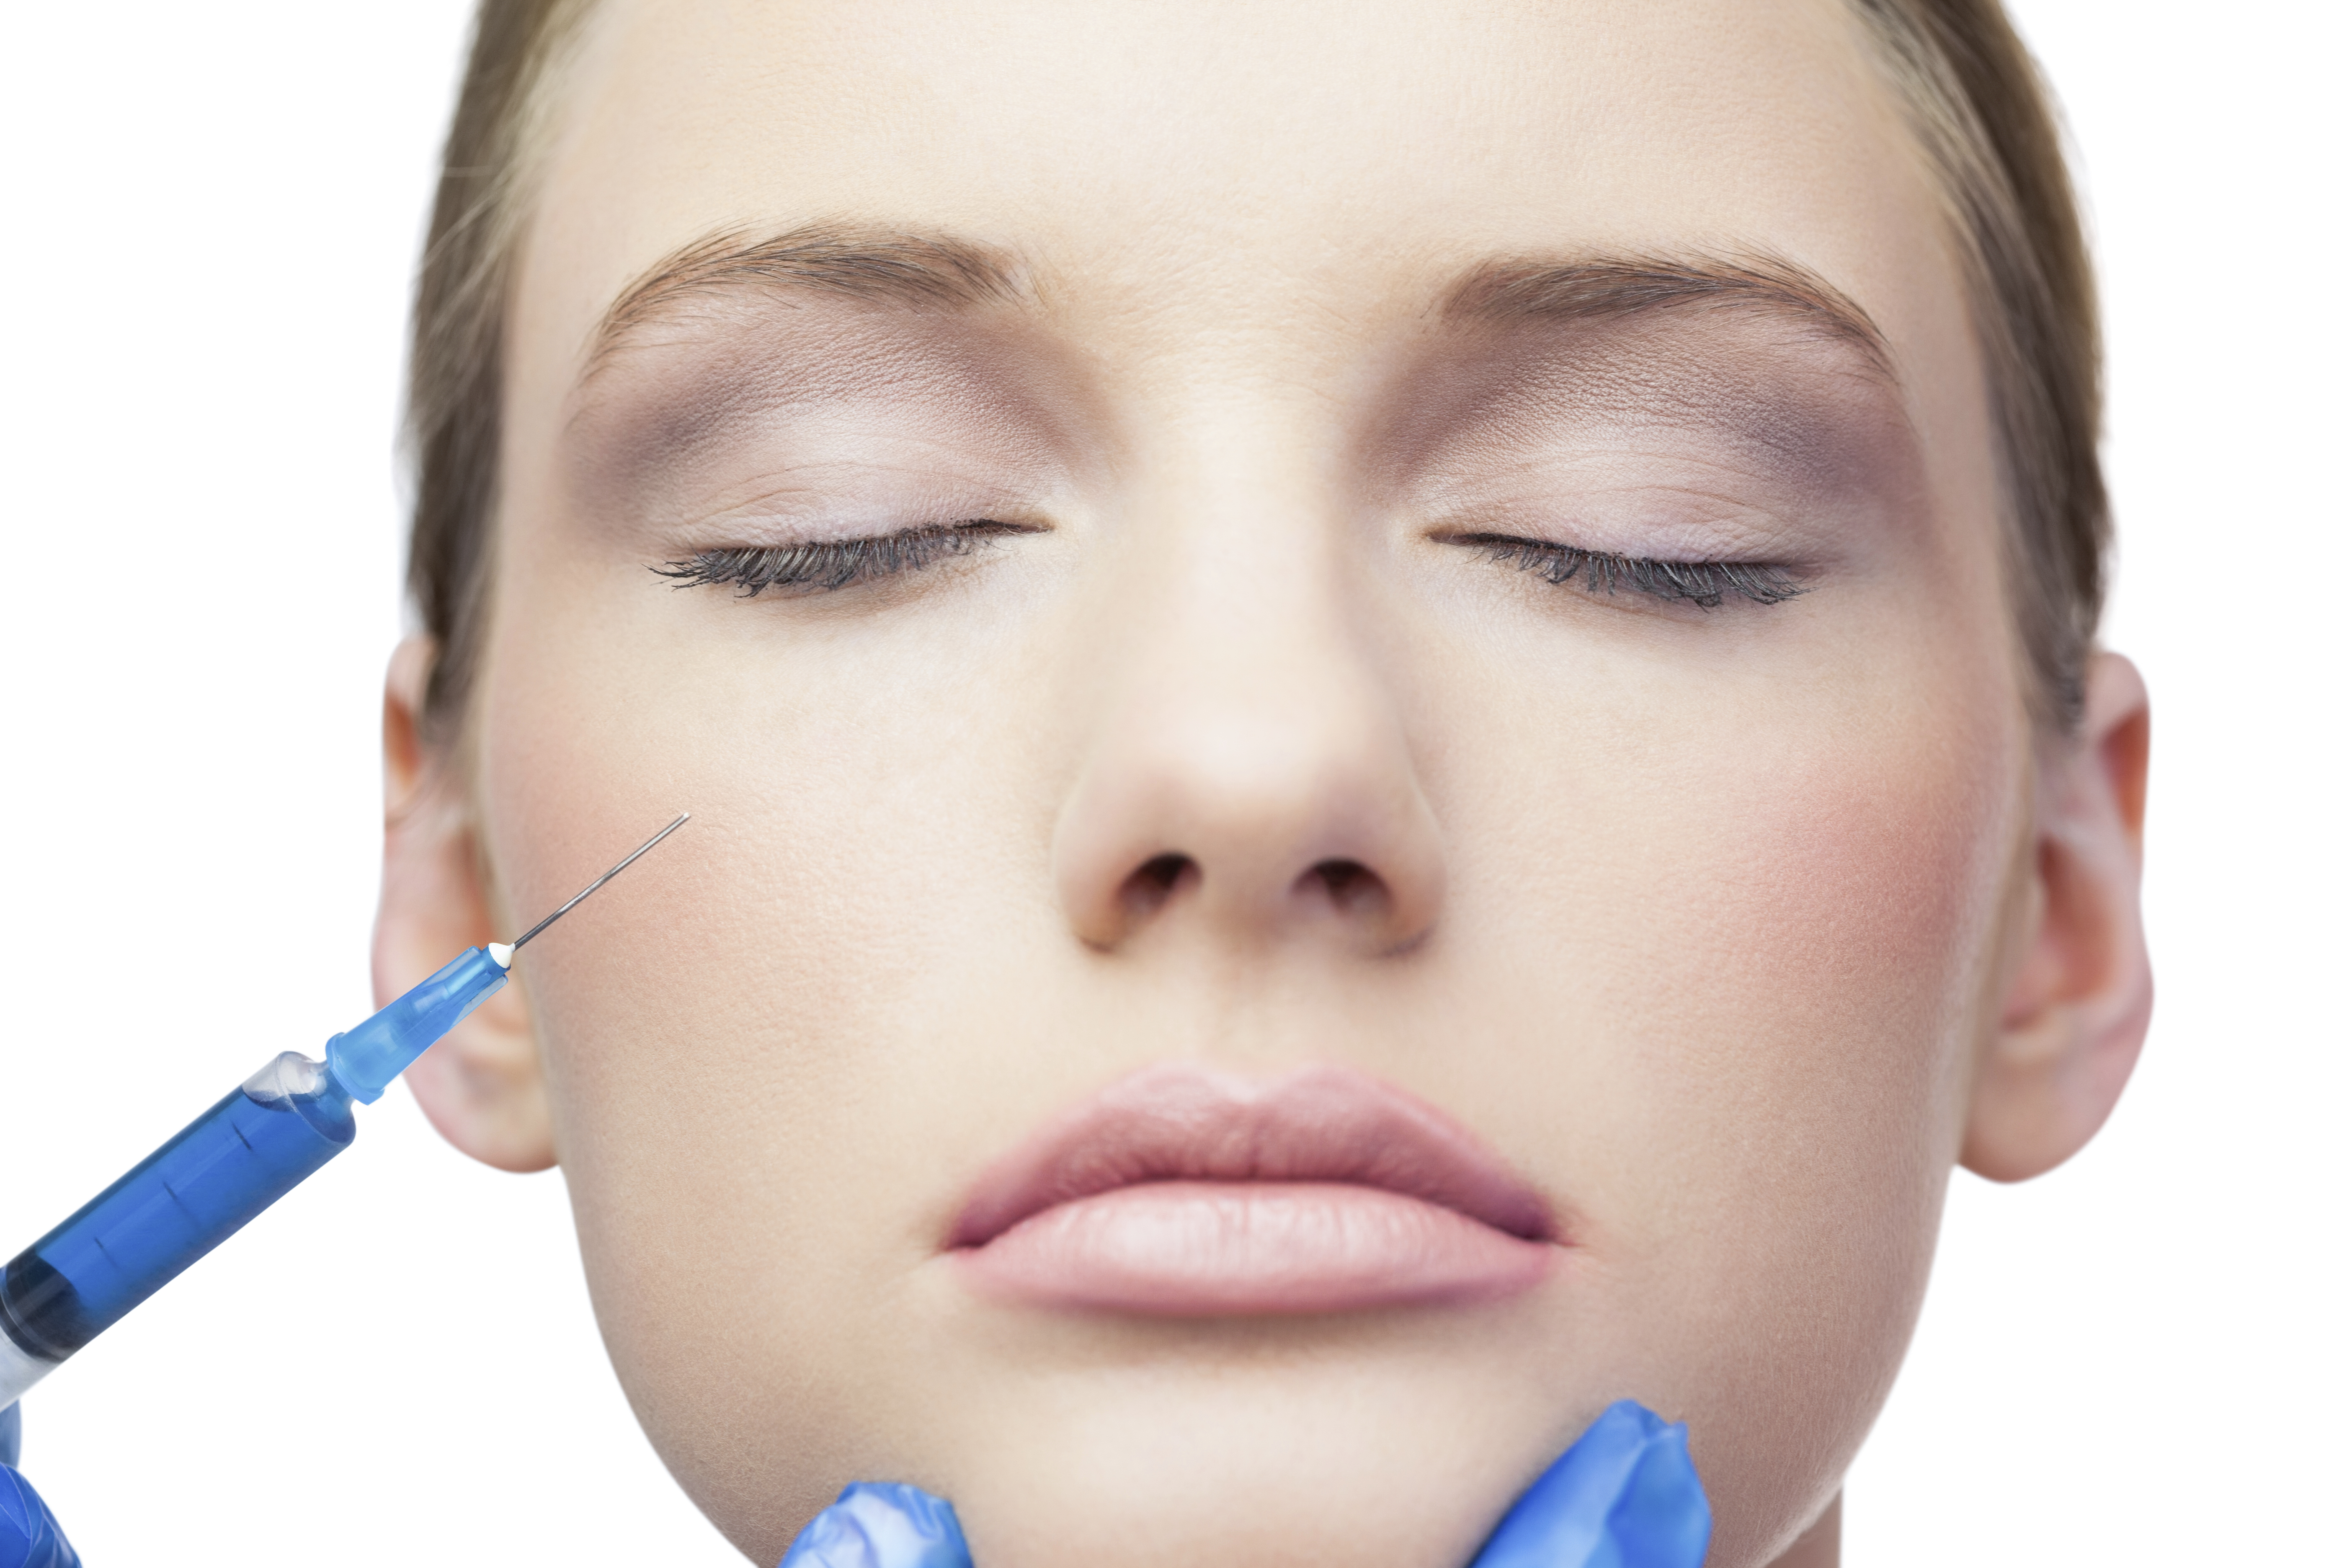 FDA warns of risk from cosmetic facial fillers - CBS News